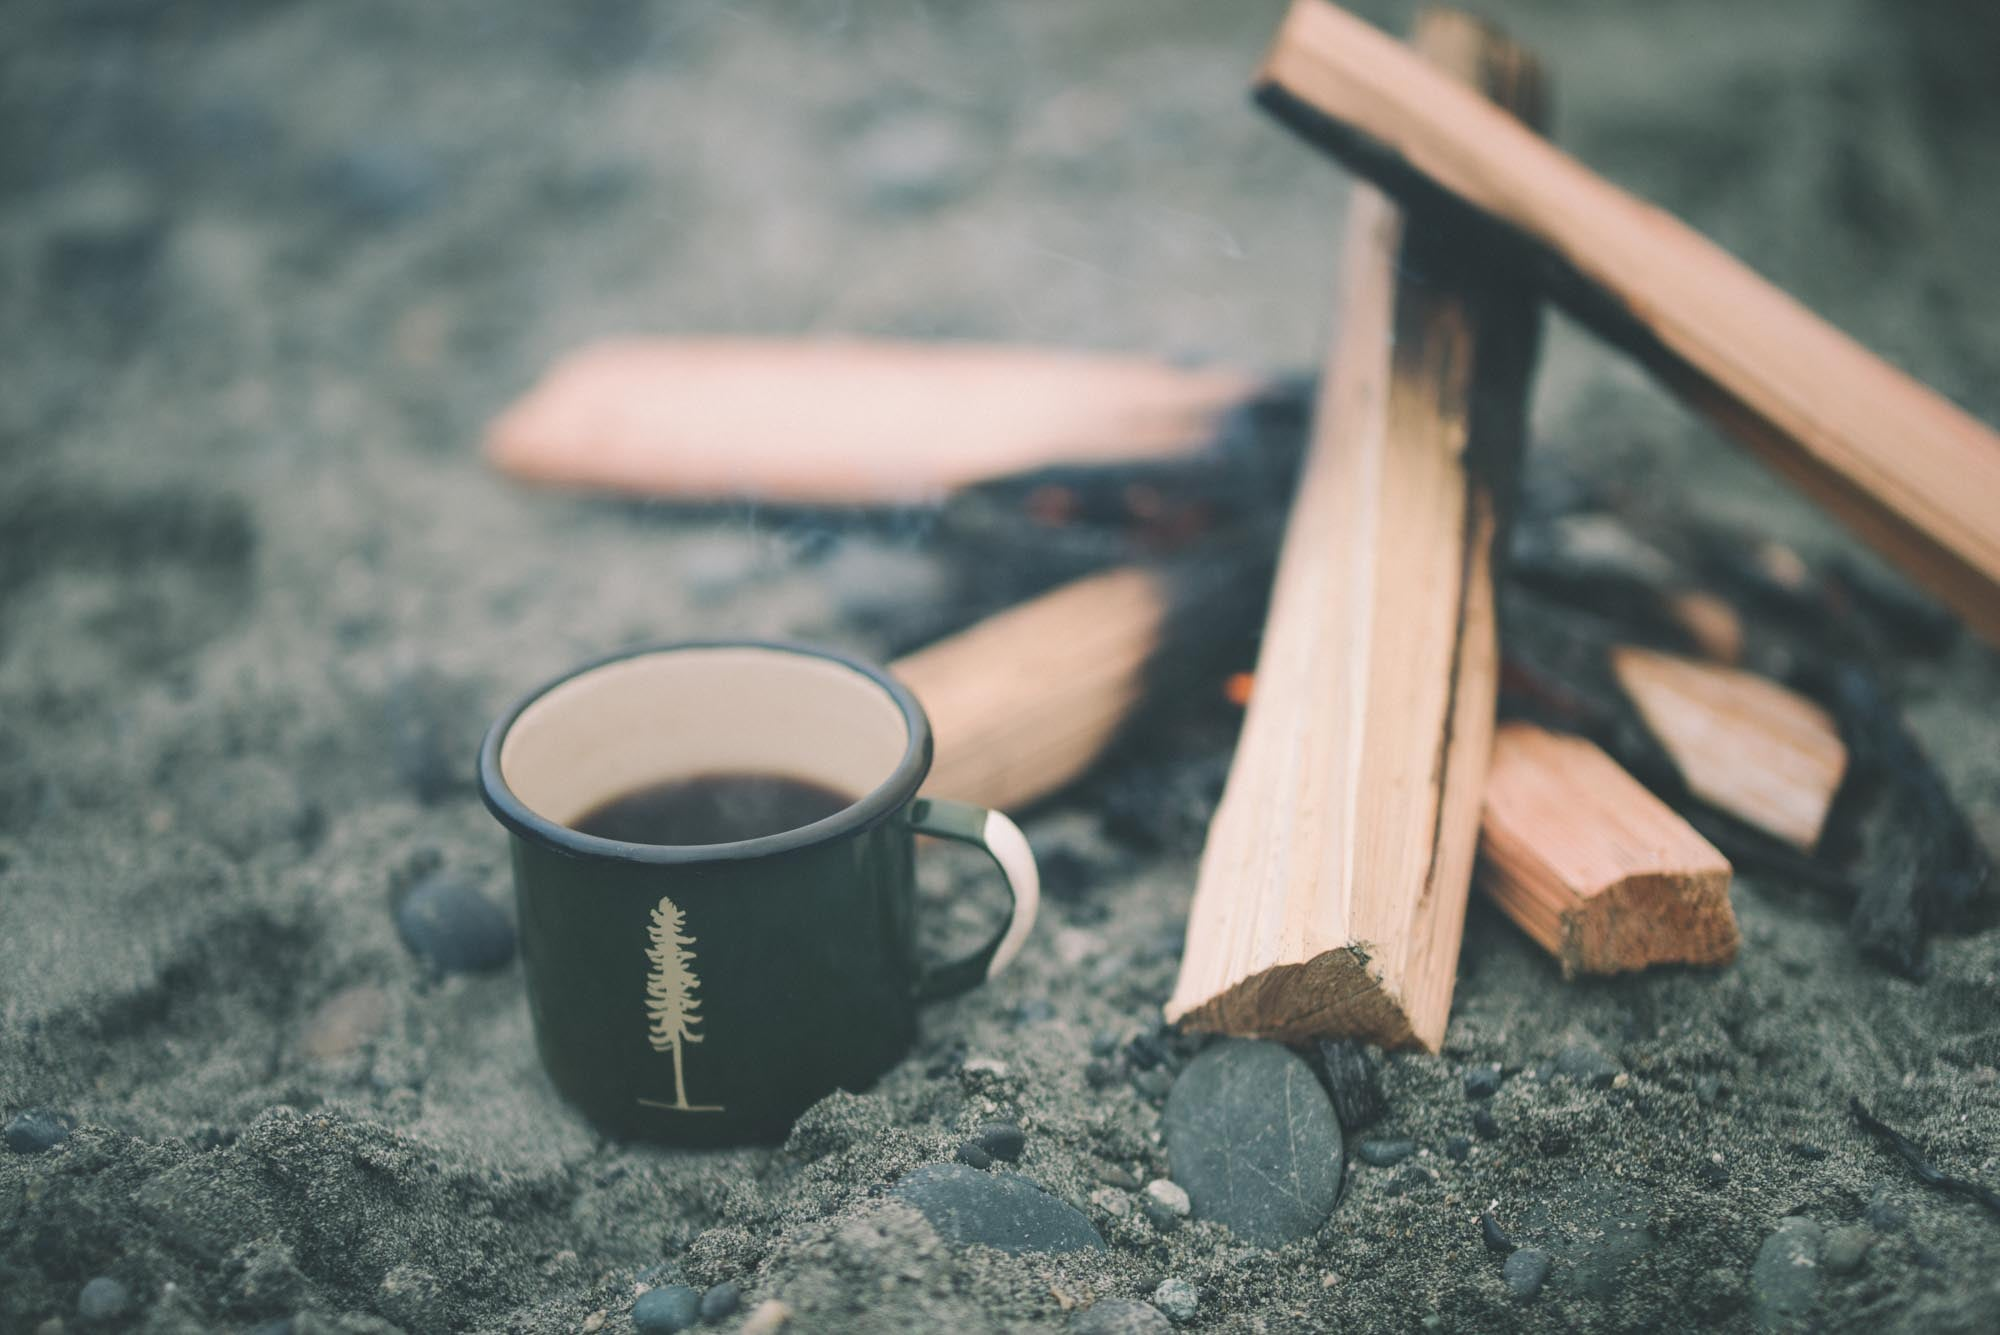 coffee with ecologyst newsletter